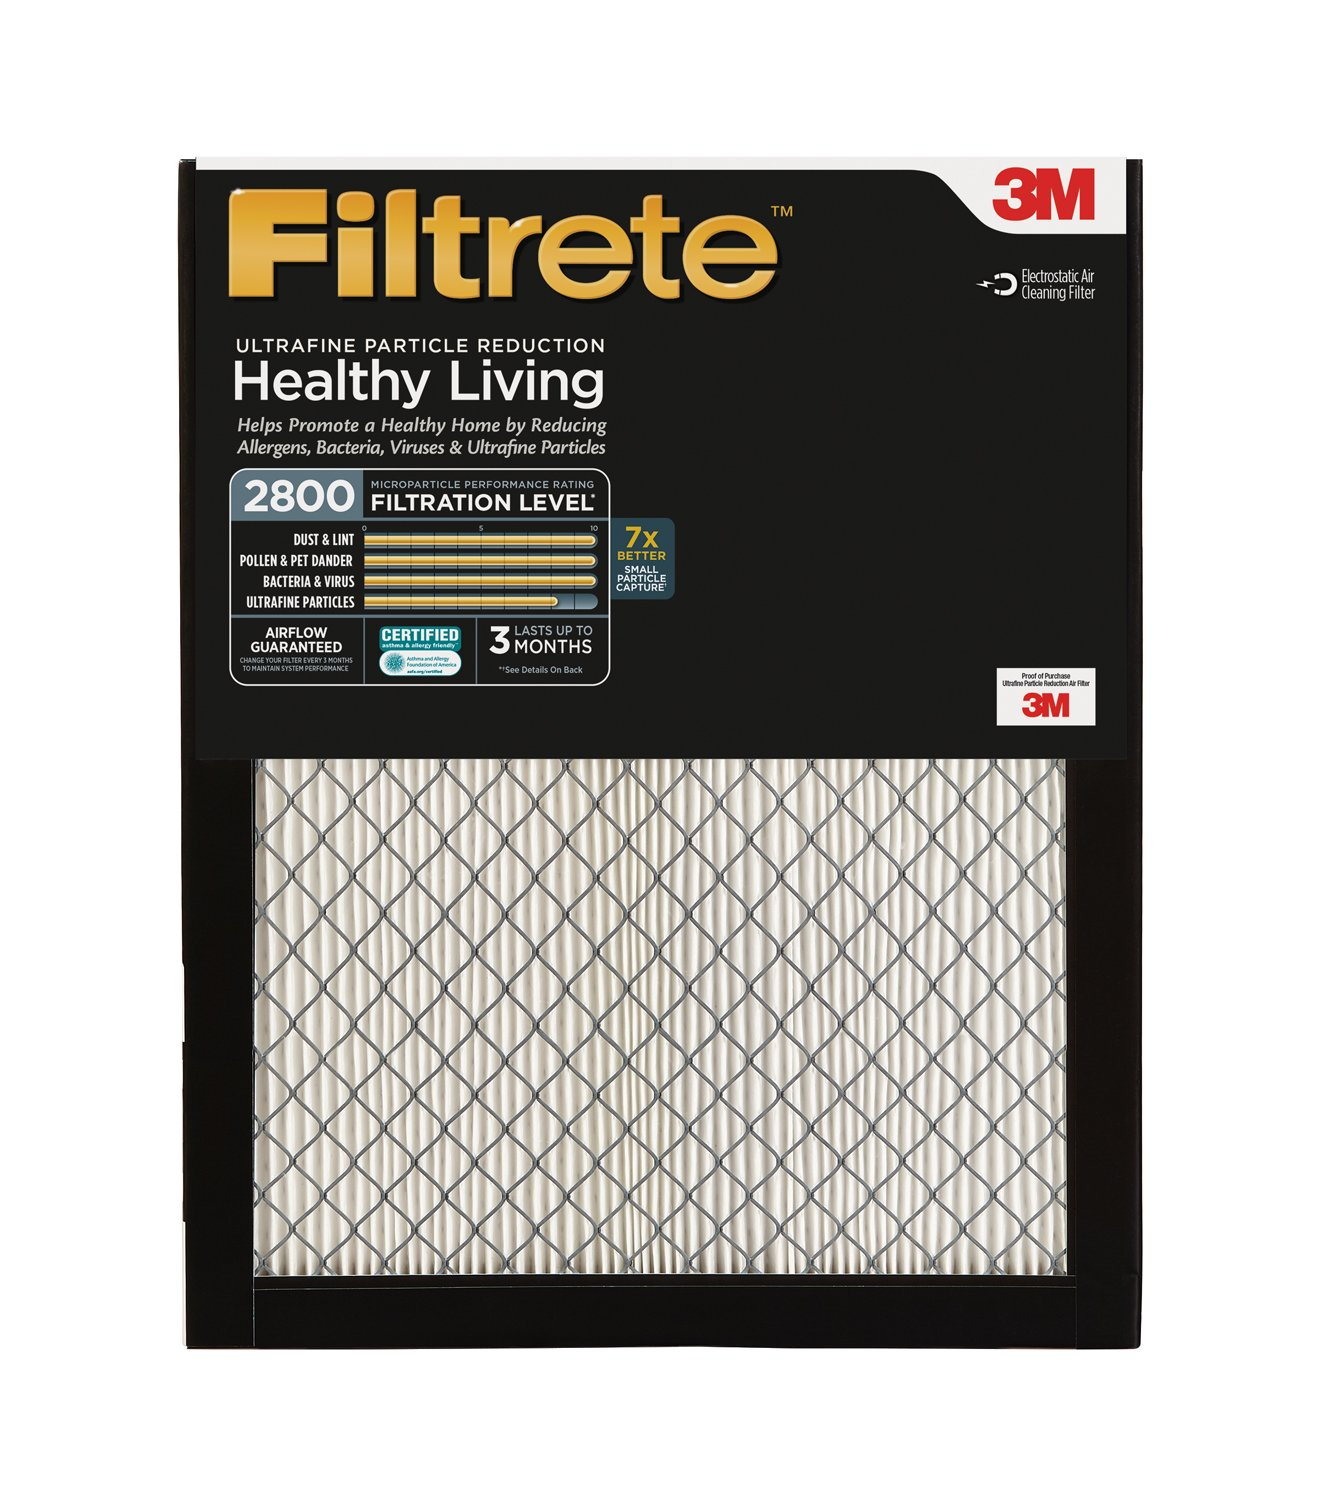 Filtrete MPR 2800 20 x 25 x 1 Ultrafine Particle Reduction HVAC Air Filter, Captures Microscopic Particles, 2-Pack